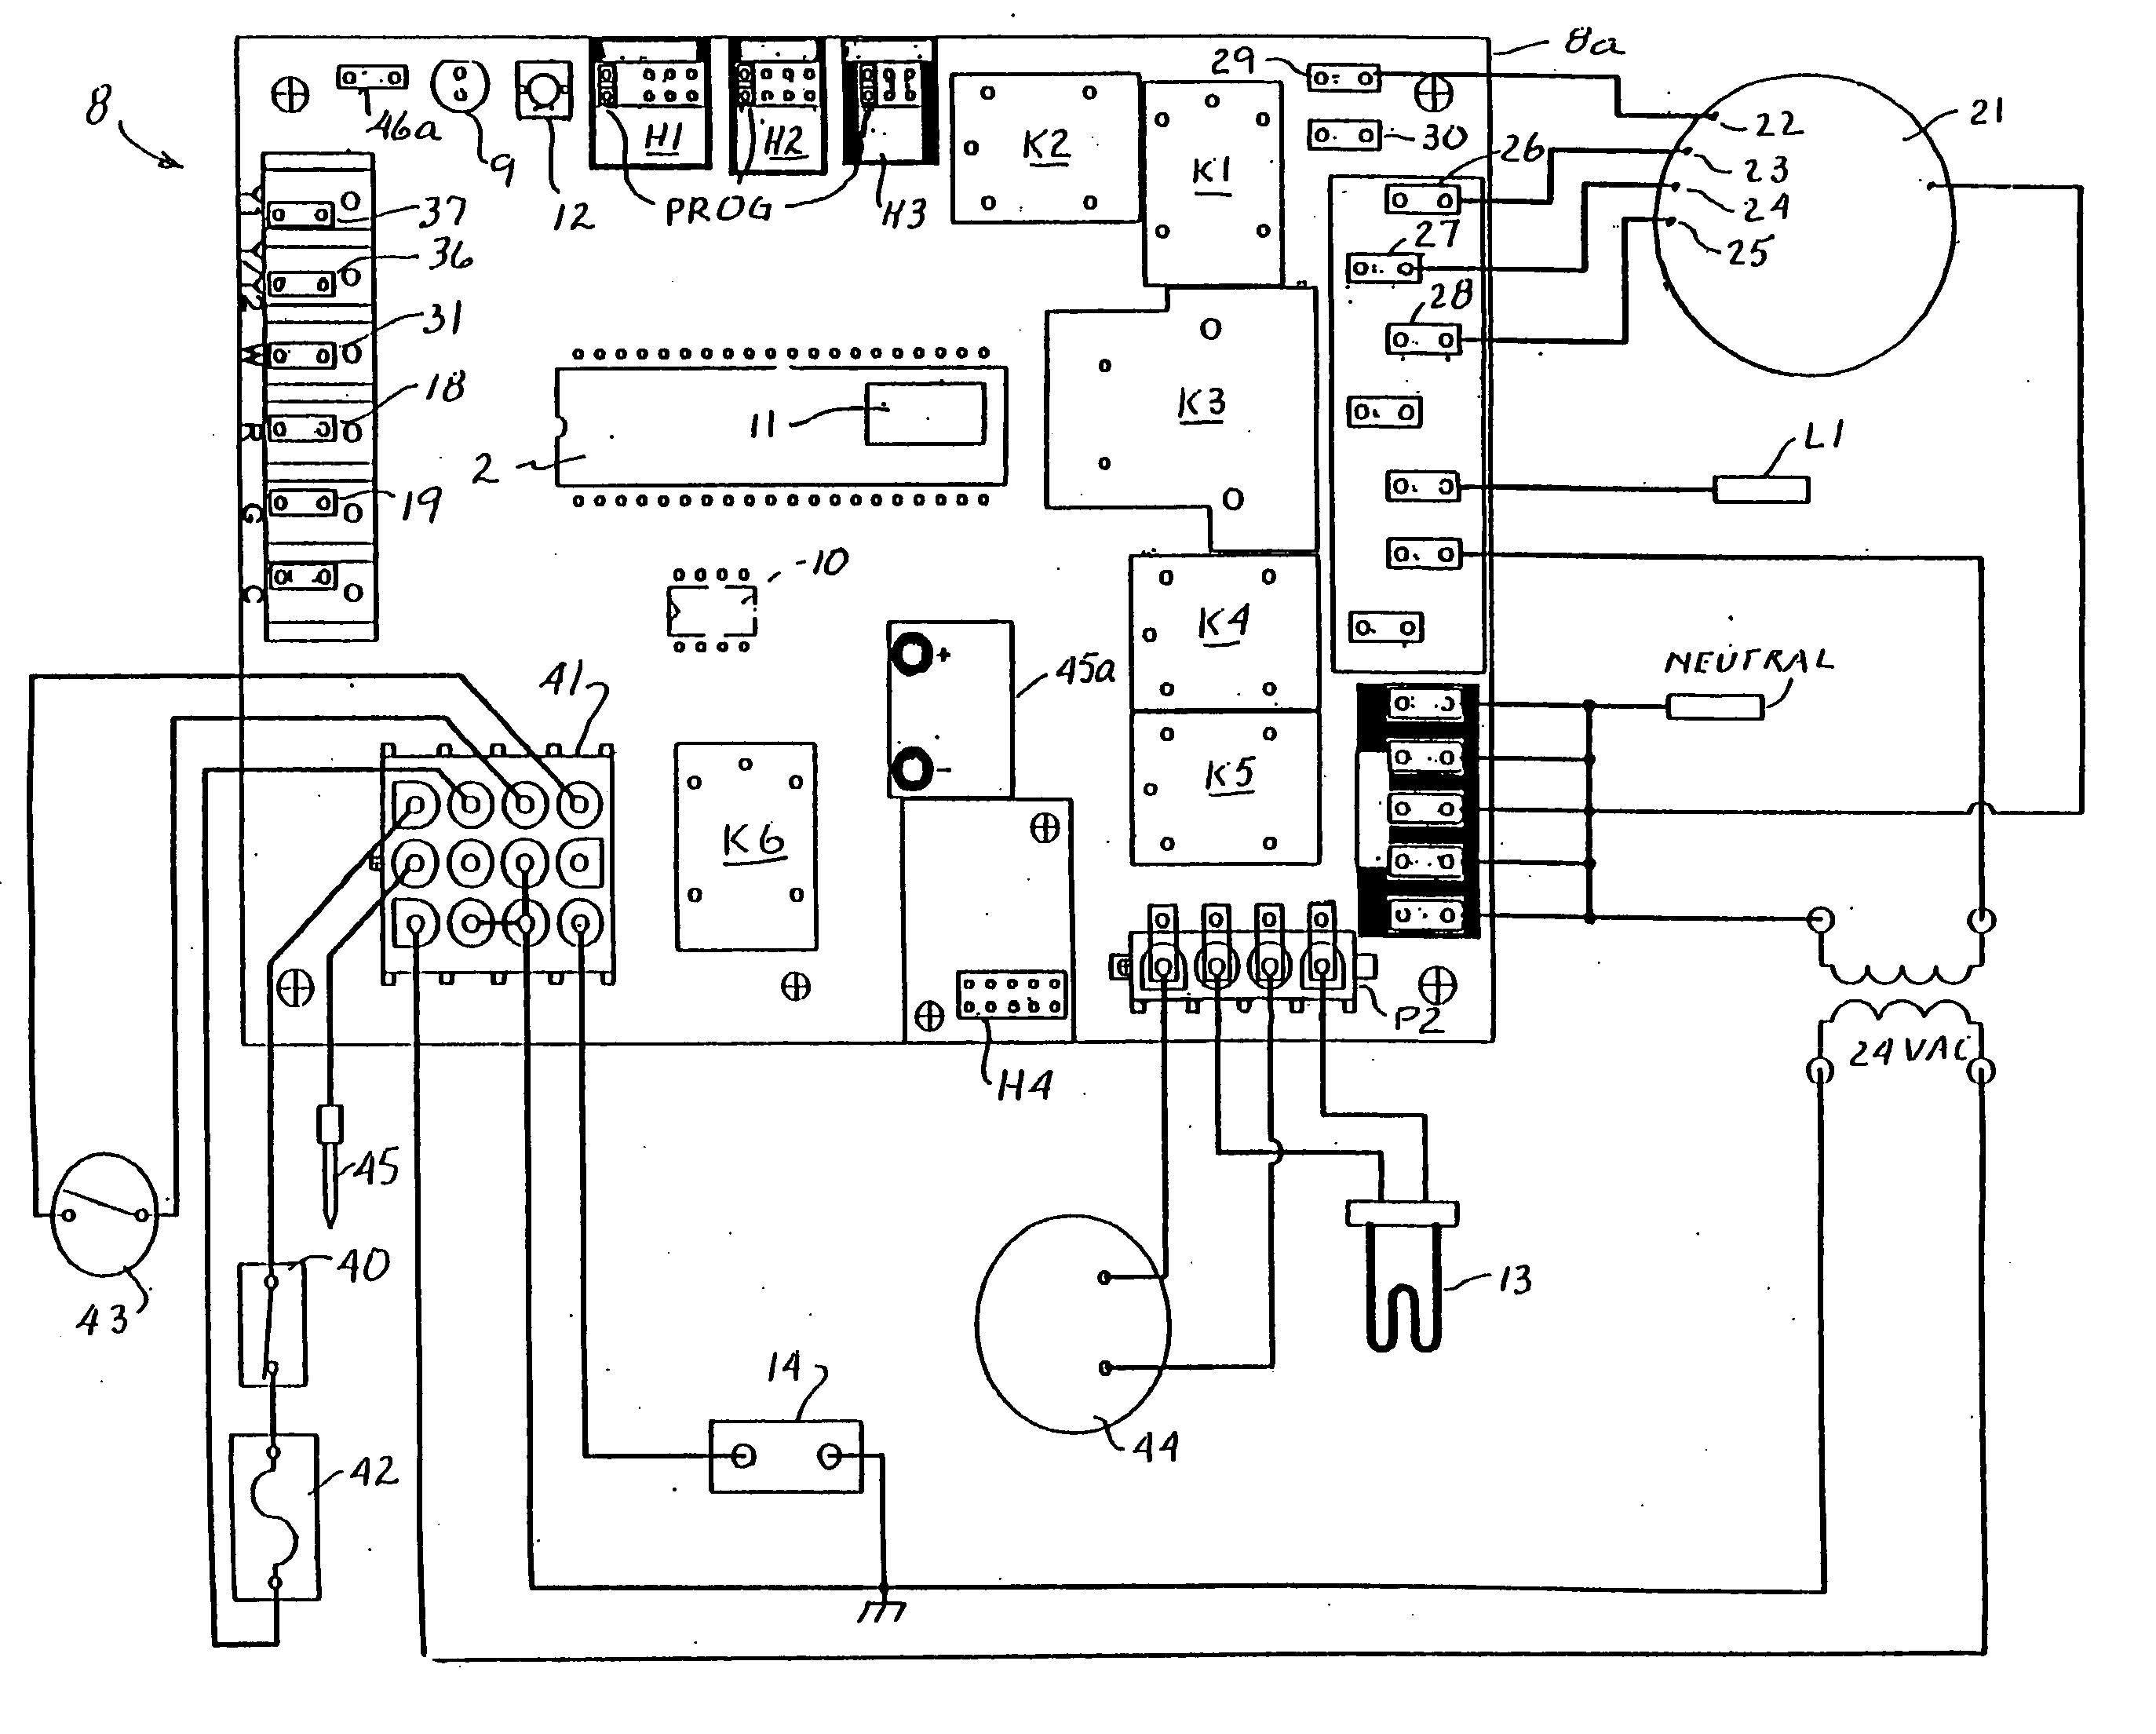 DIAGRAM] Hh84aa020 Circuit Control Board Wiring Diagram FULL Version HD  Quality Wiring Diagram - OUTREACHDIAGRAMS.DEFI-GYM.FRDiagram Database